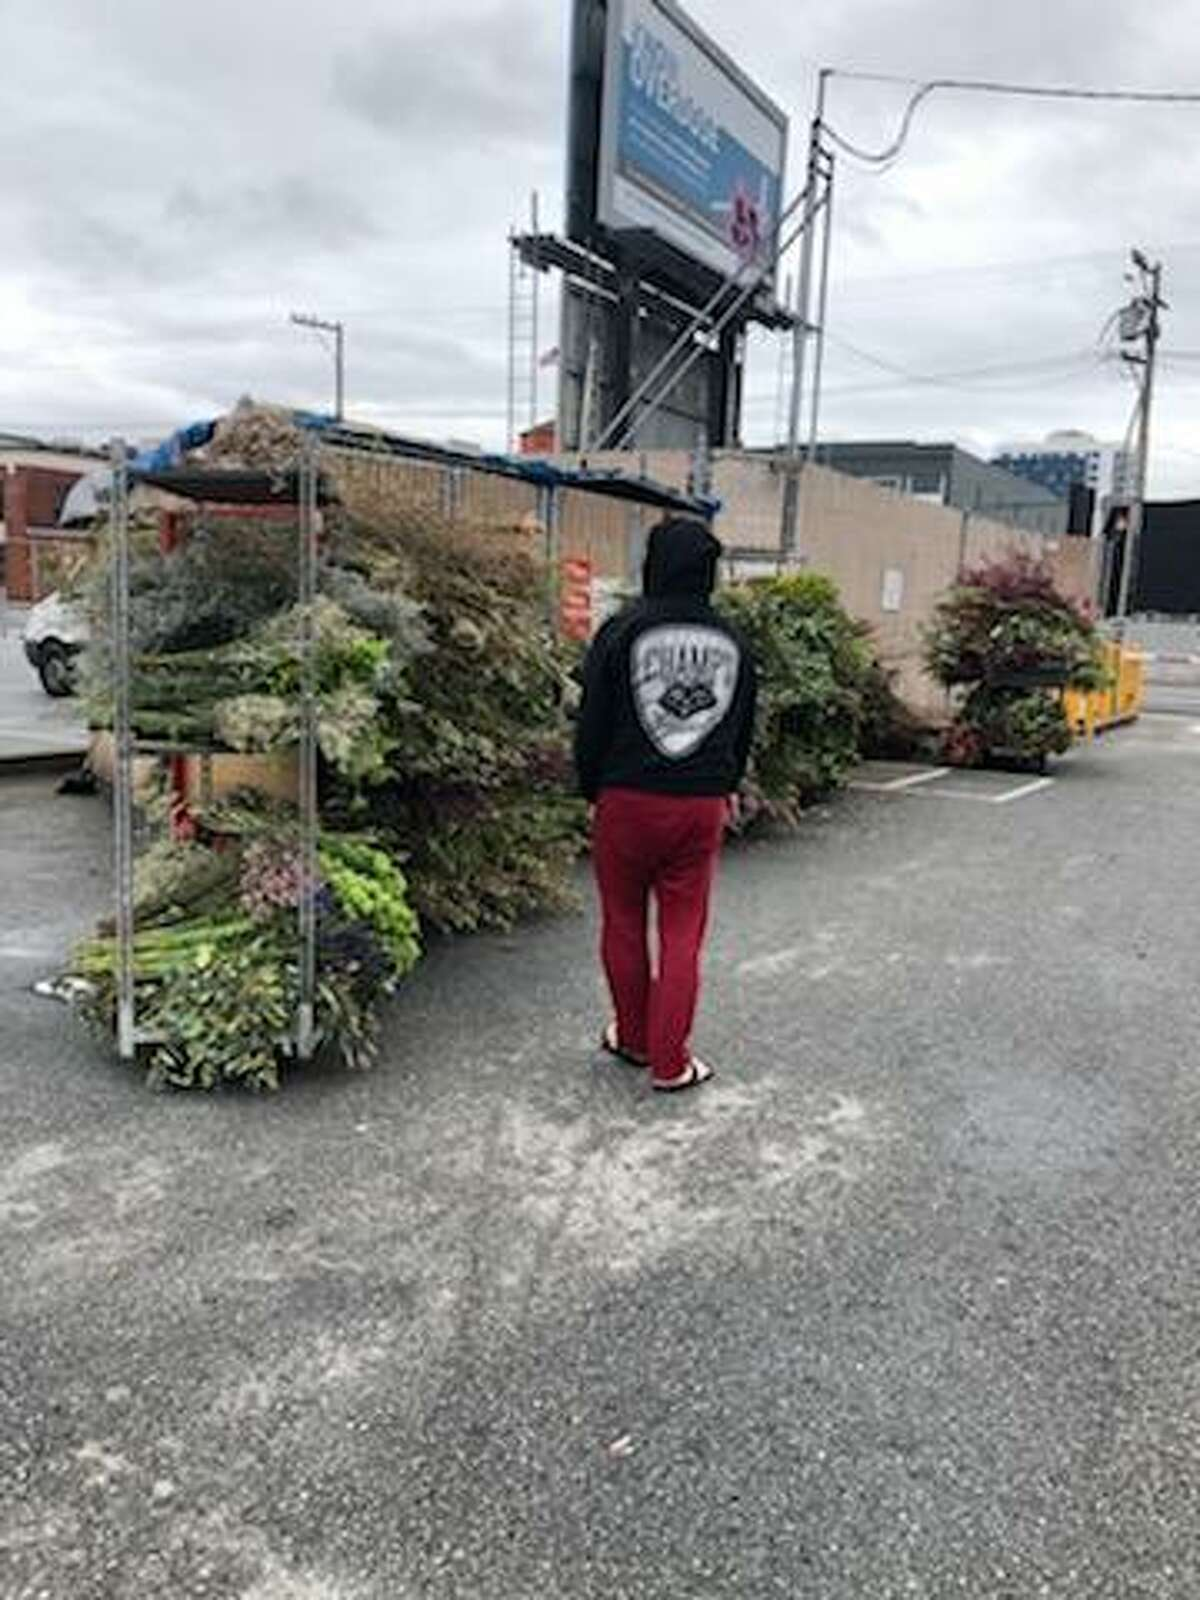 More than $1 million worth of flowers was destroyed at the San Francisco Flower Mart last week as it prepared to close. Farmers are watching their livelihood wither on the vine.